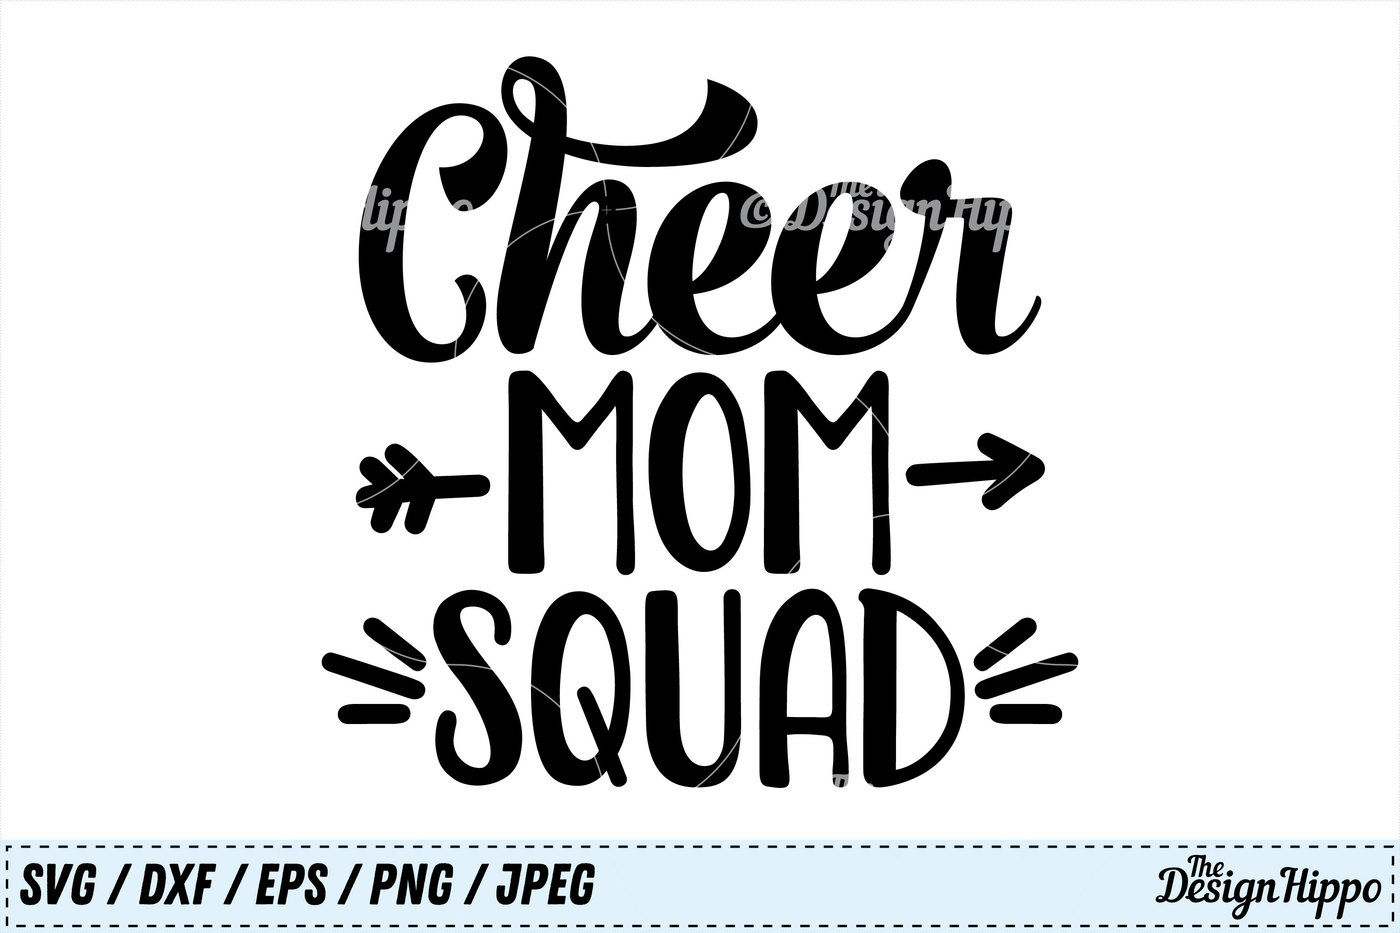 Cheer Mom Squad Svg Cheer Svg Mom Svg Squad Svg Png Dxf Cut